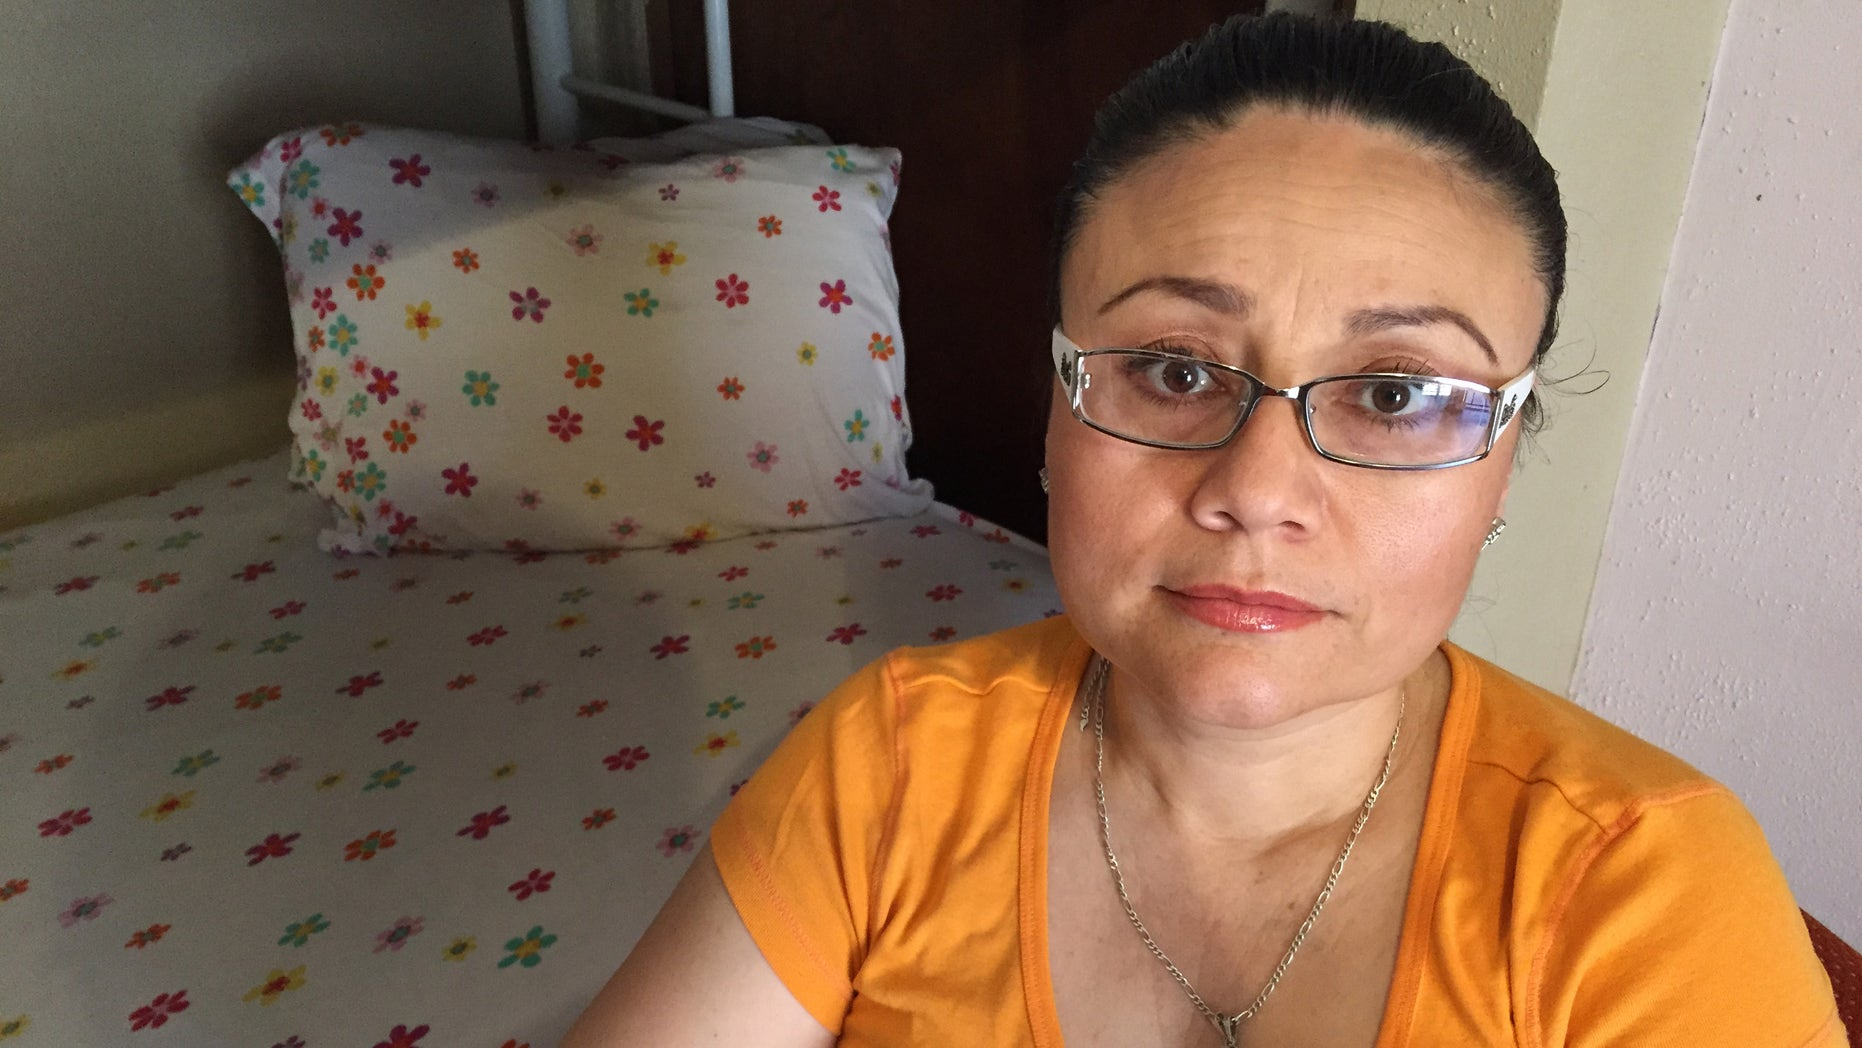 In this Thursday, July 30, 2015 photo, Rosa Robles Loreto sits in her small room at Southside Presbyterian Church in Tucson, Ariz., where she has taken sanctuary from deportation for a year. Robles Loreto, 42, says she is not leaving the church until the government assures her she will not be deported. (AP Photo/Astrid Galvan,File)